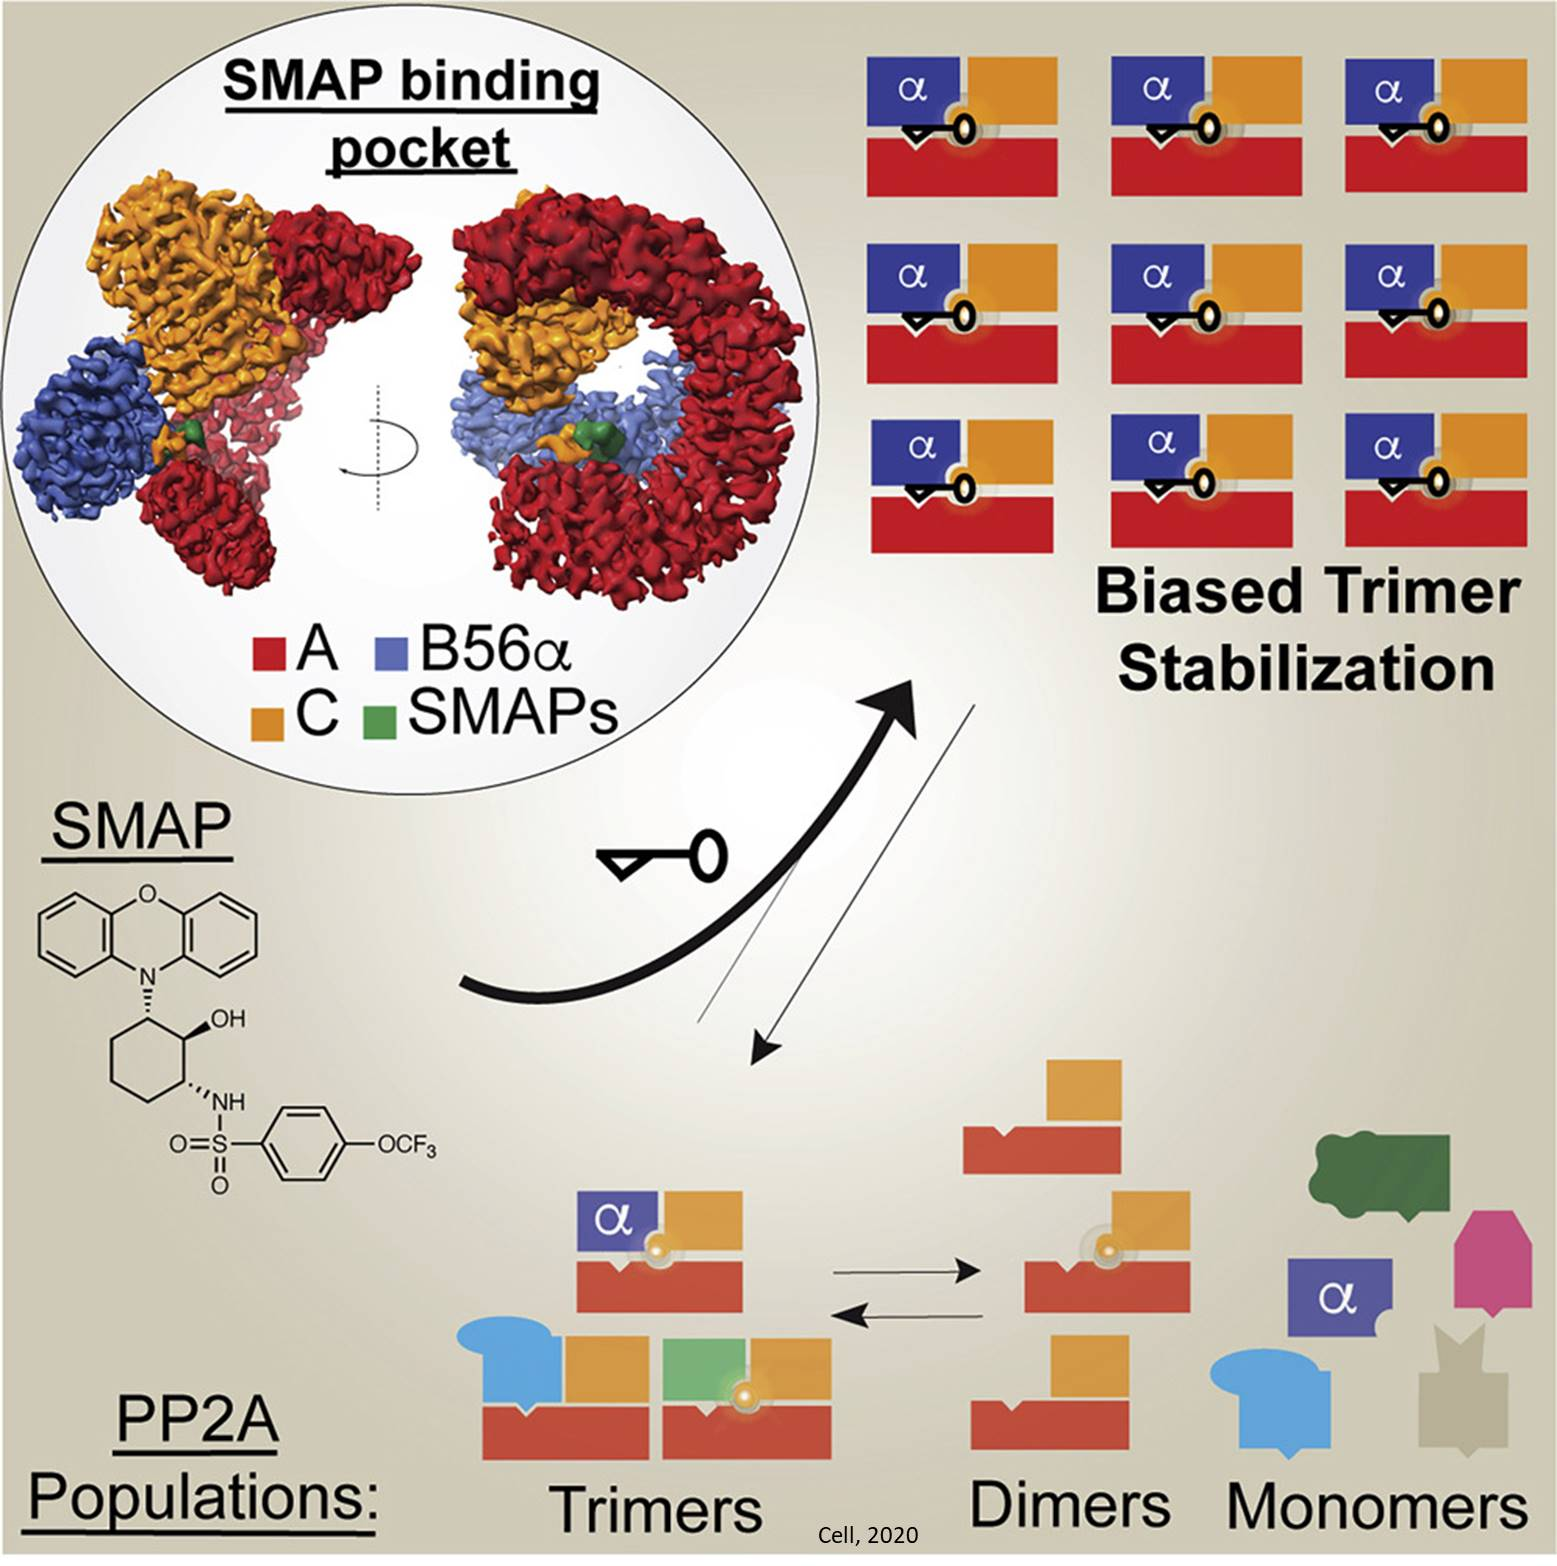 Stabilizing protein phosphatases to target cancer